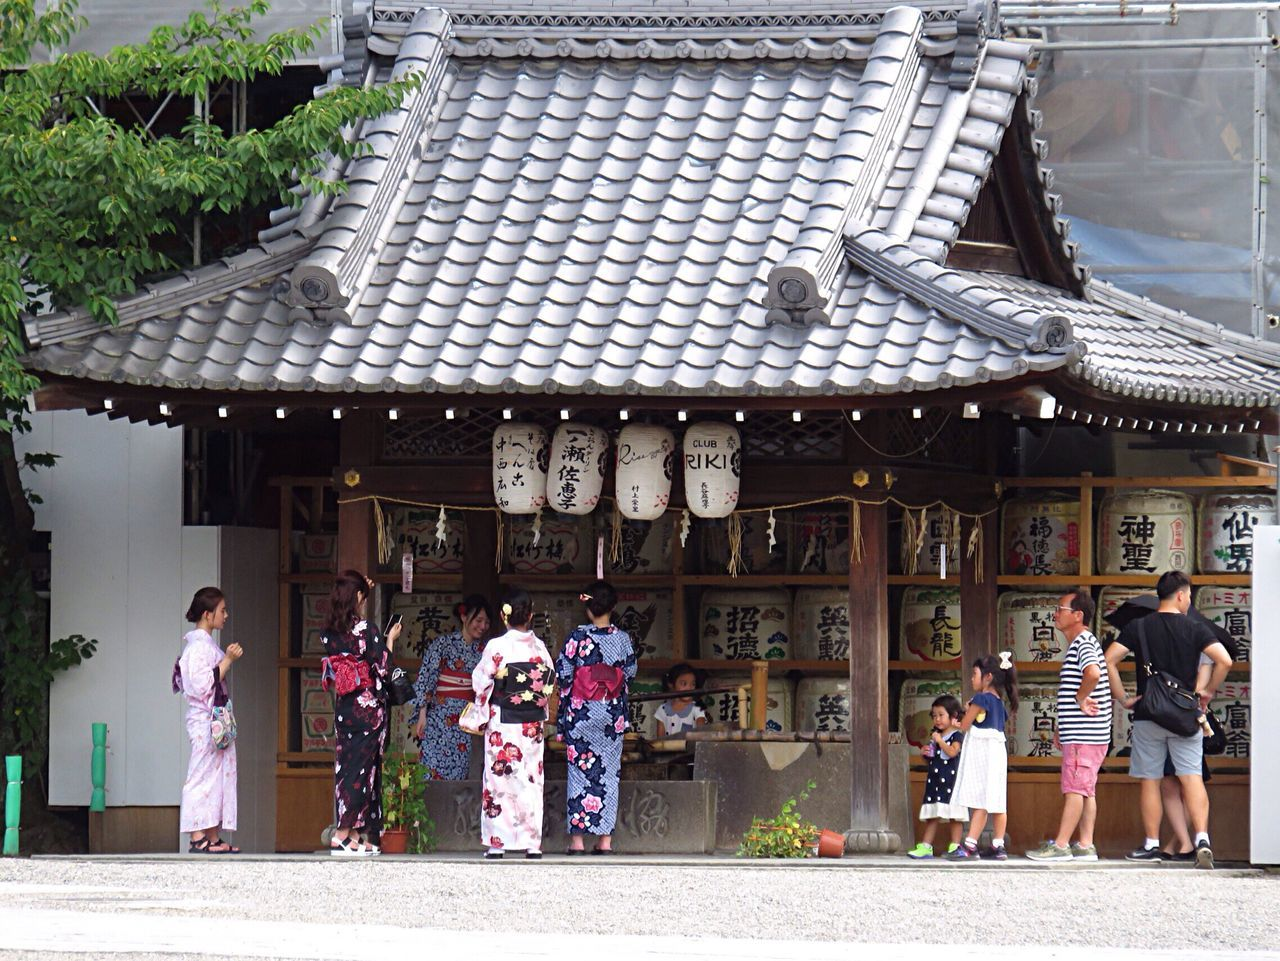 Yasaka-jinja Shrine Yasaka Yasaka Shrine Shrine Shrine Of Japan YUKATA Japanese  Japanesegirl Girls Kyoto Kyoto,japan Kyoto, Japan Kyotojapan Kyoto Japan Japaneseculture Japanesetraditional